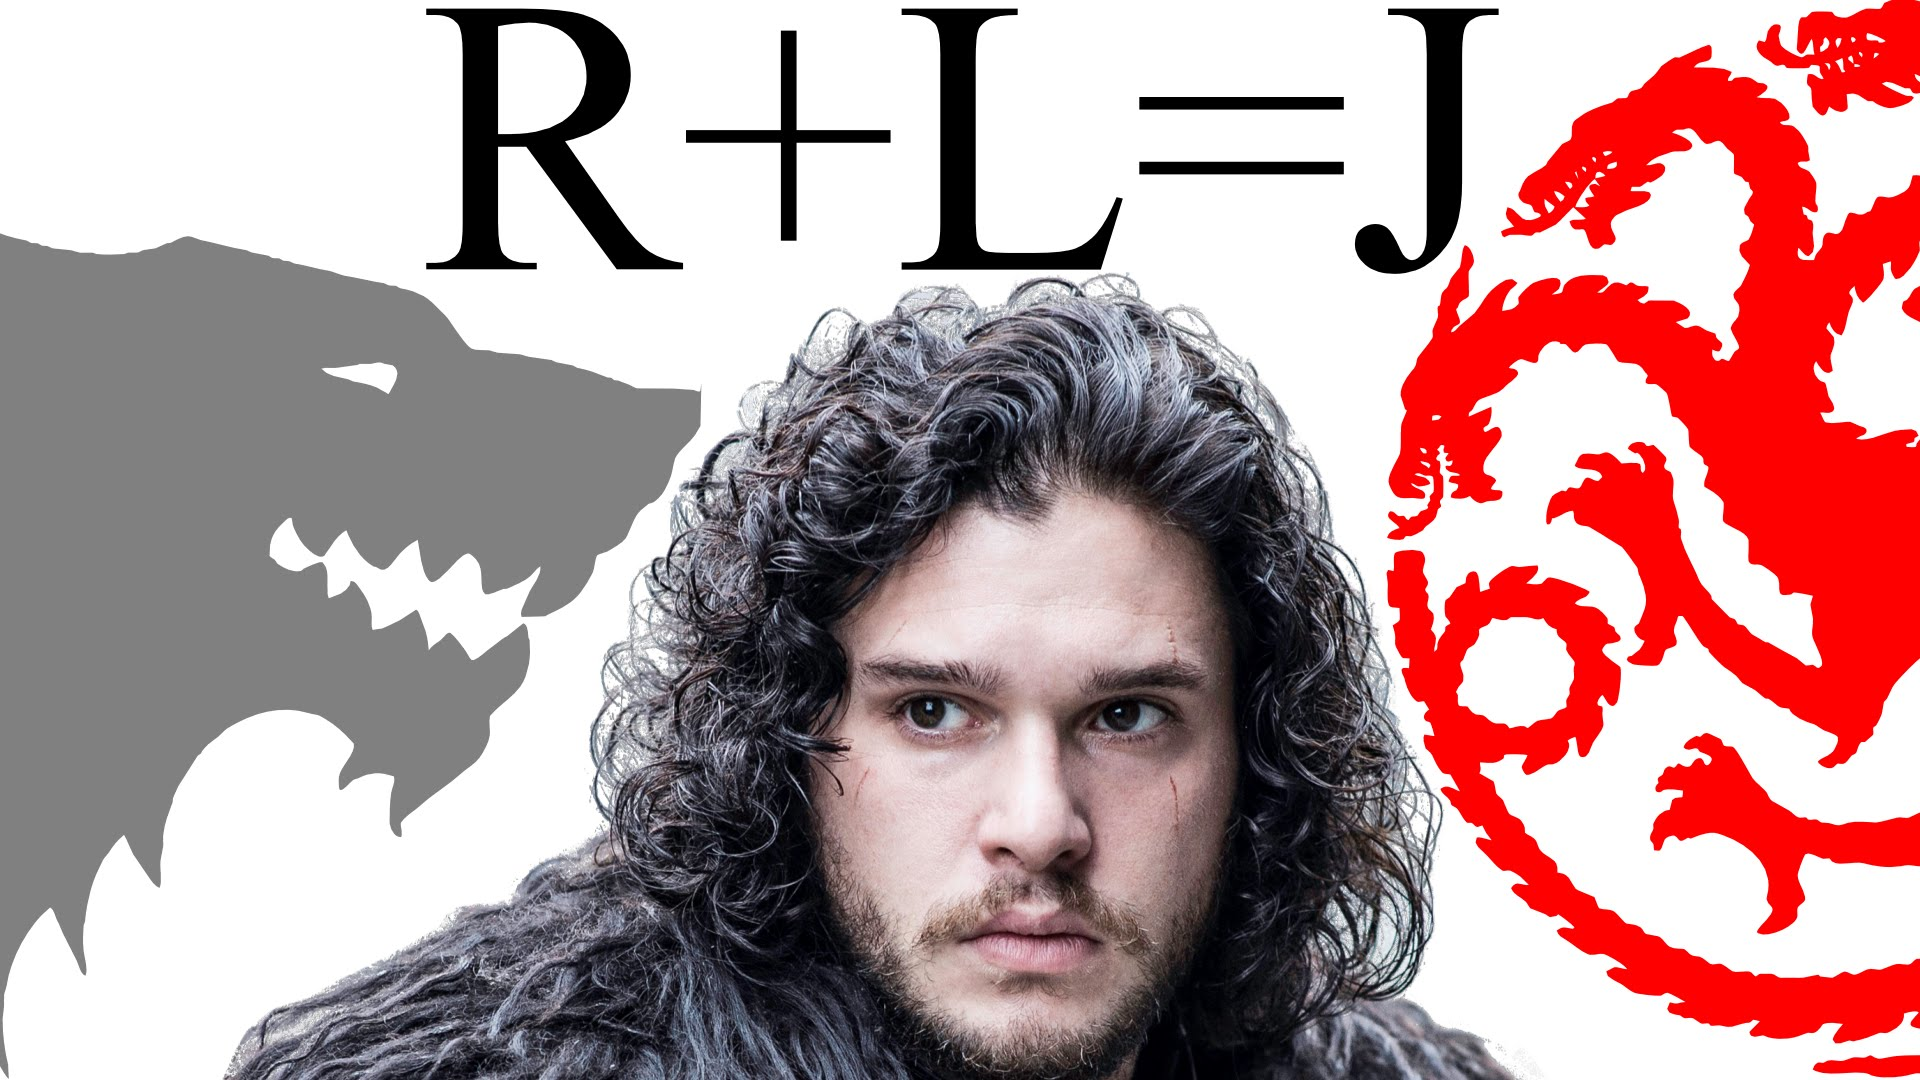 Photo of Game of Thrones Season 6: Did they Really Confirm R+L=J?